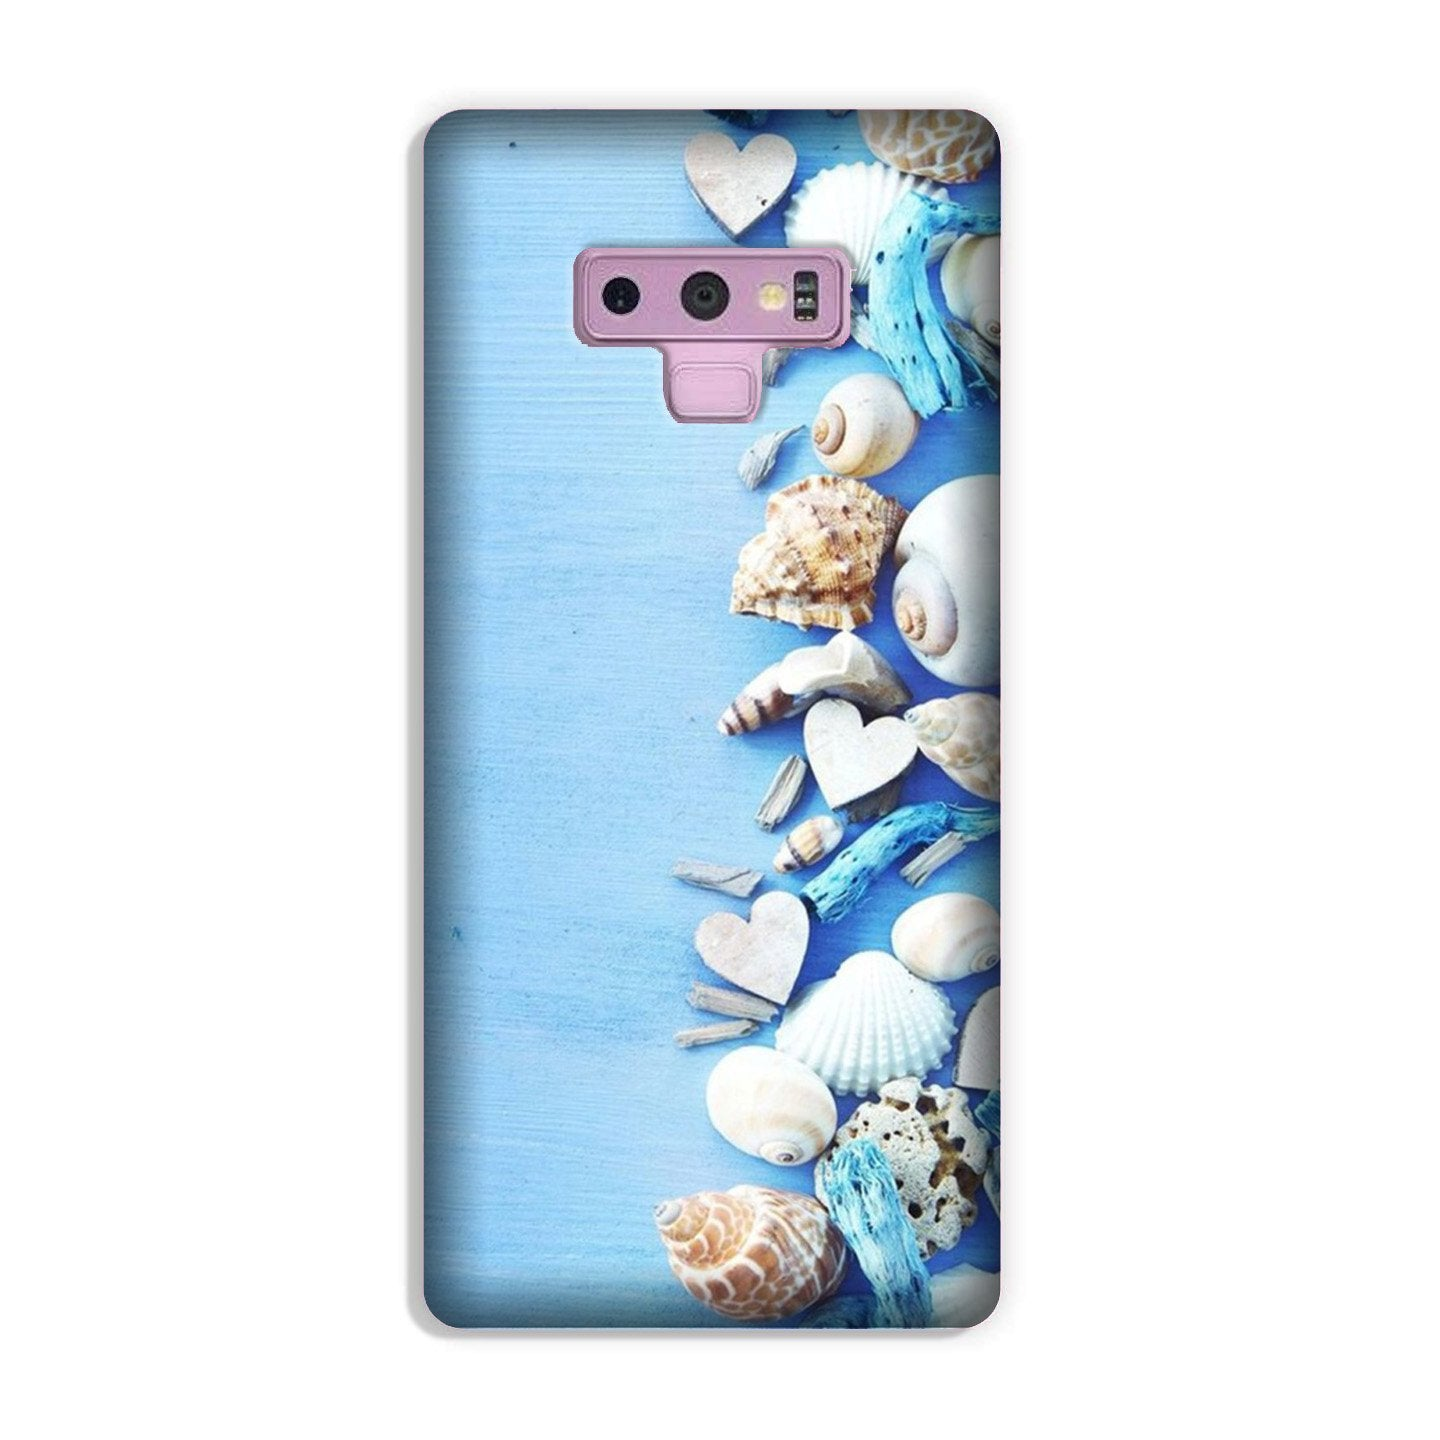 Sea Shells2 Case for Galaxy Note 9